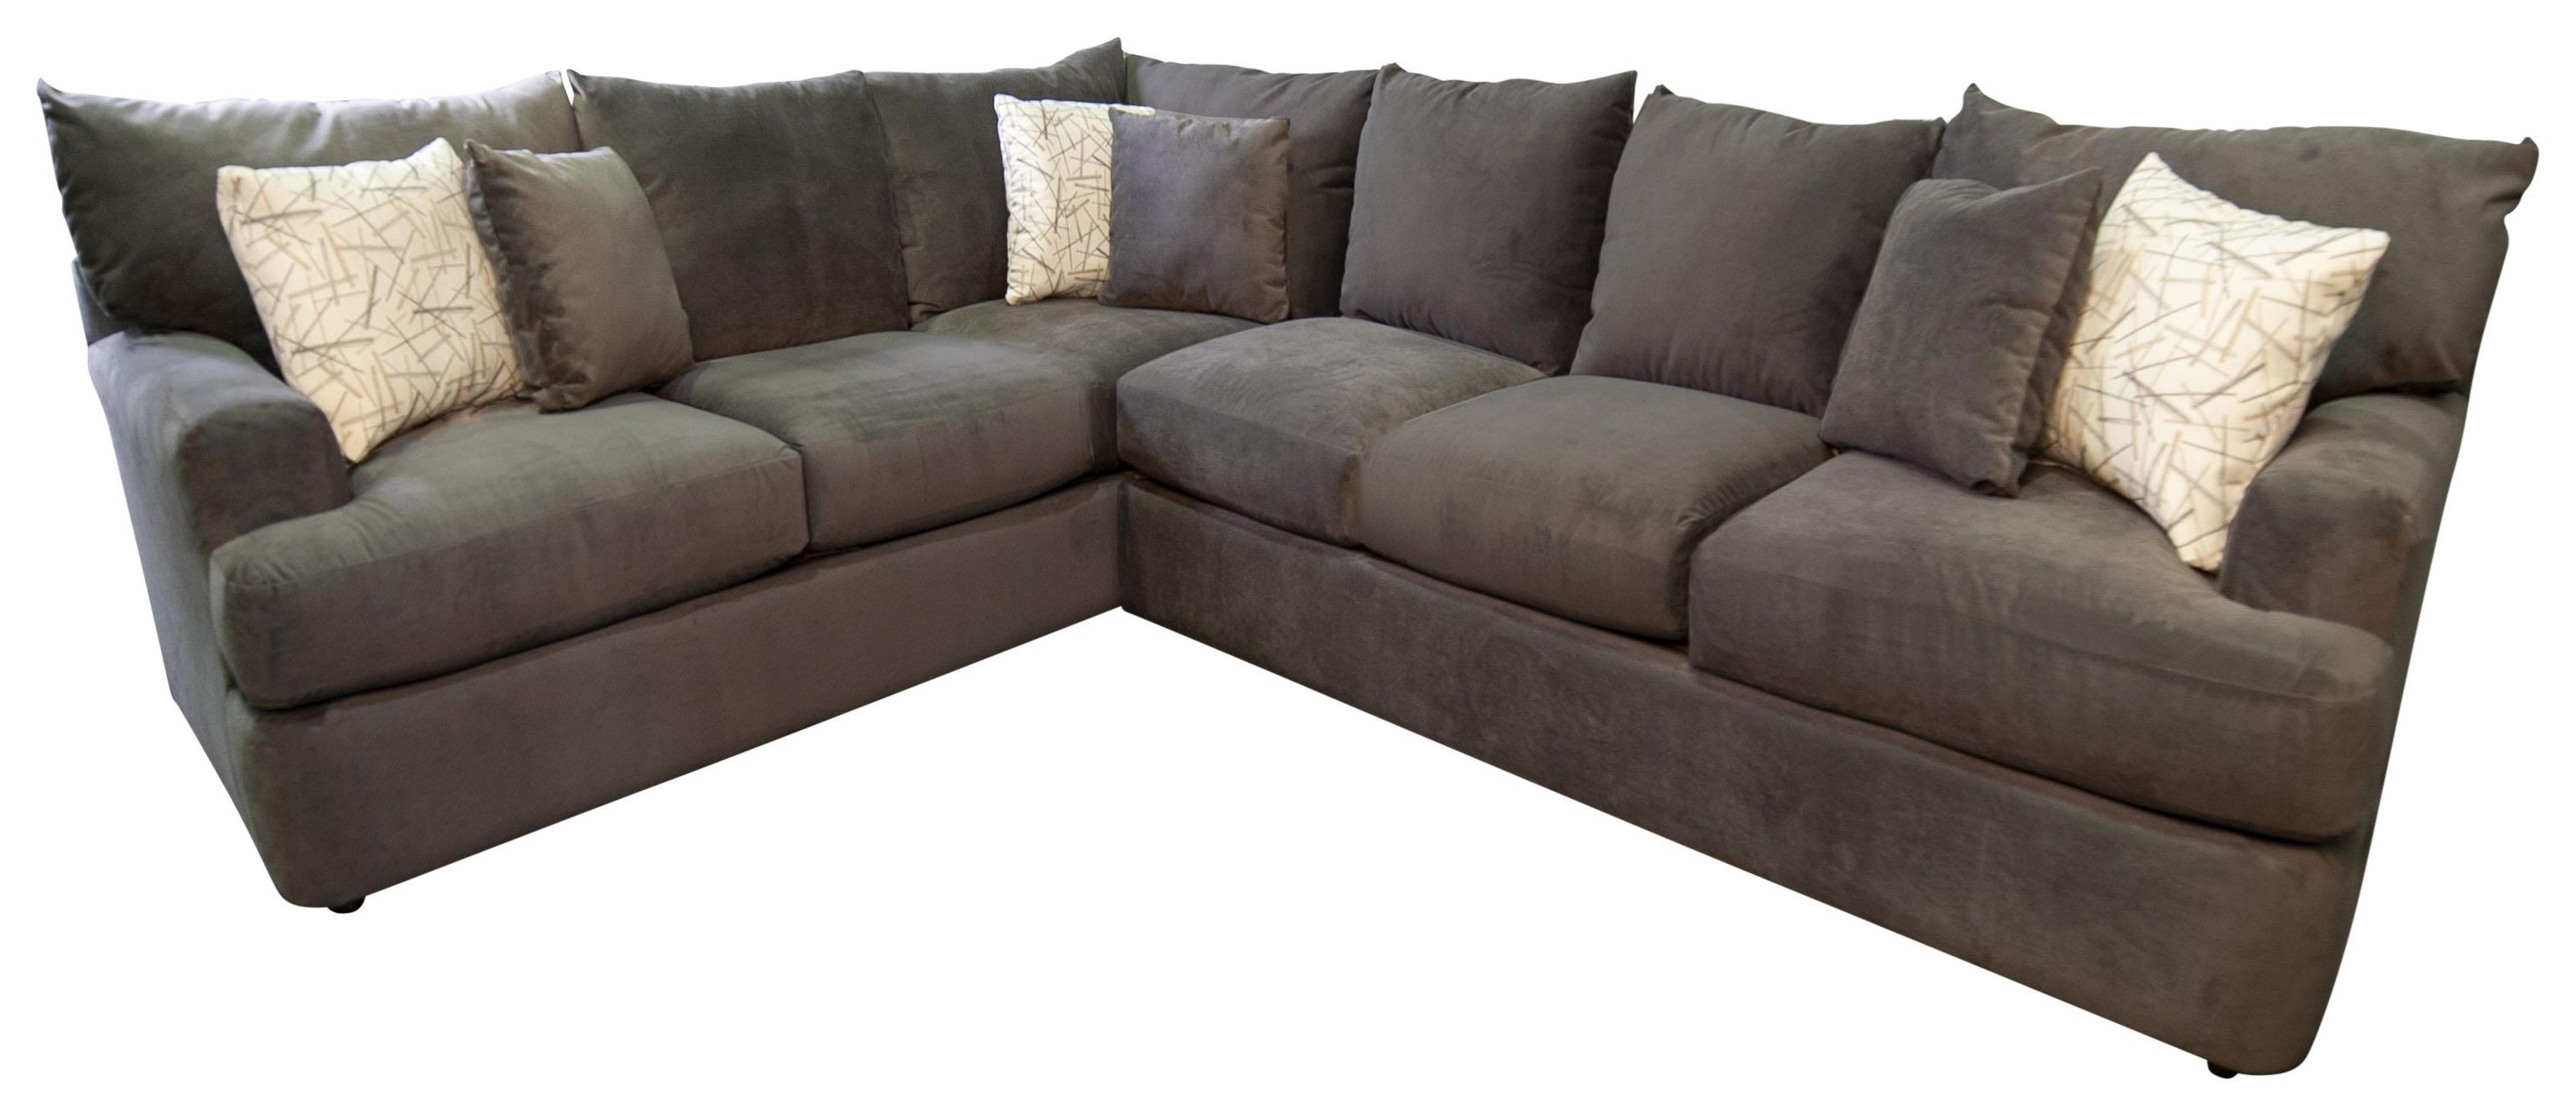 Gwendolyn Gwendolyn Sectional Sofa by Klaussner at Morris Home